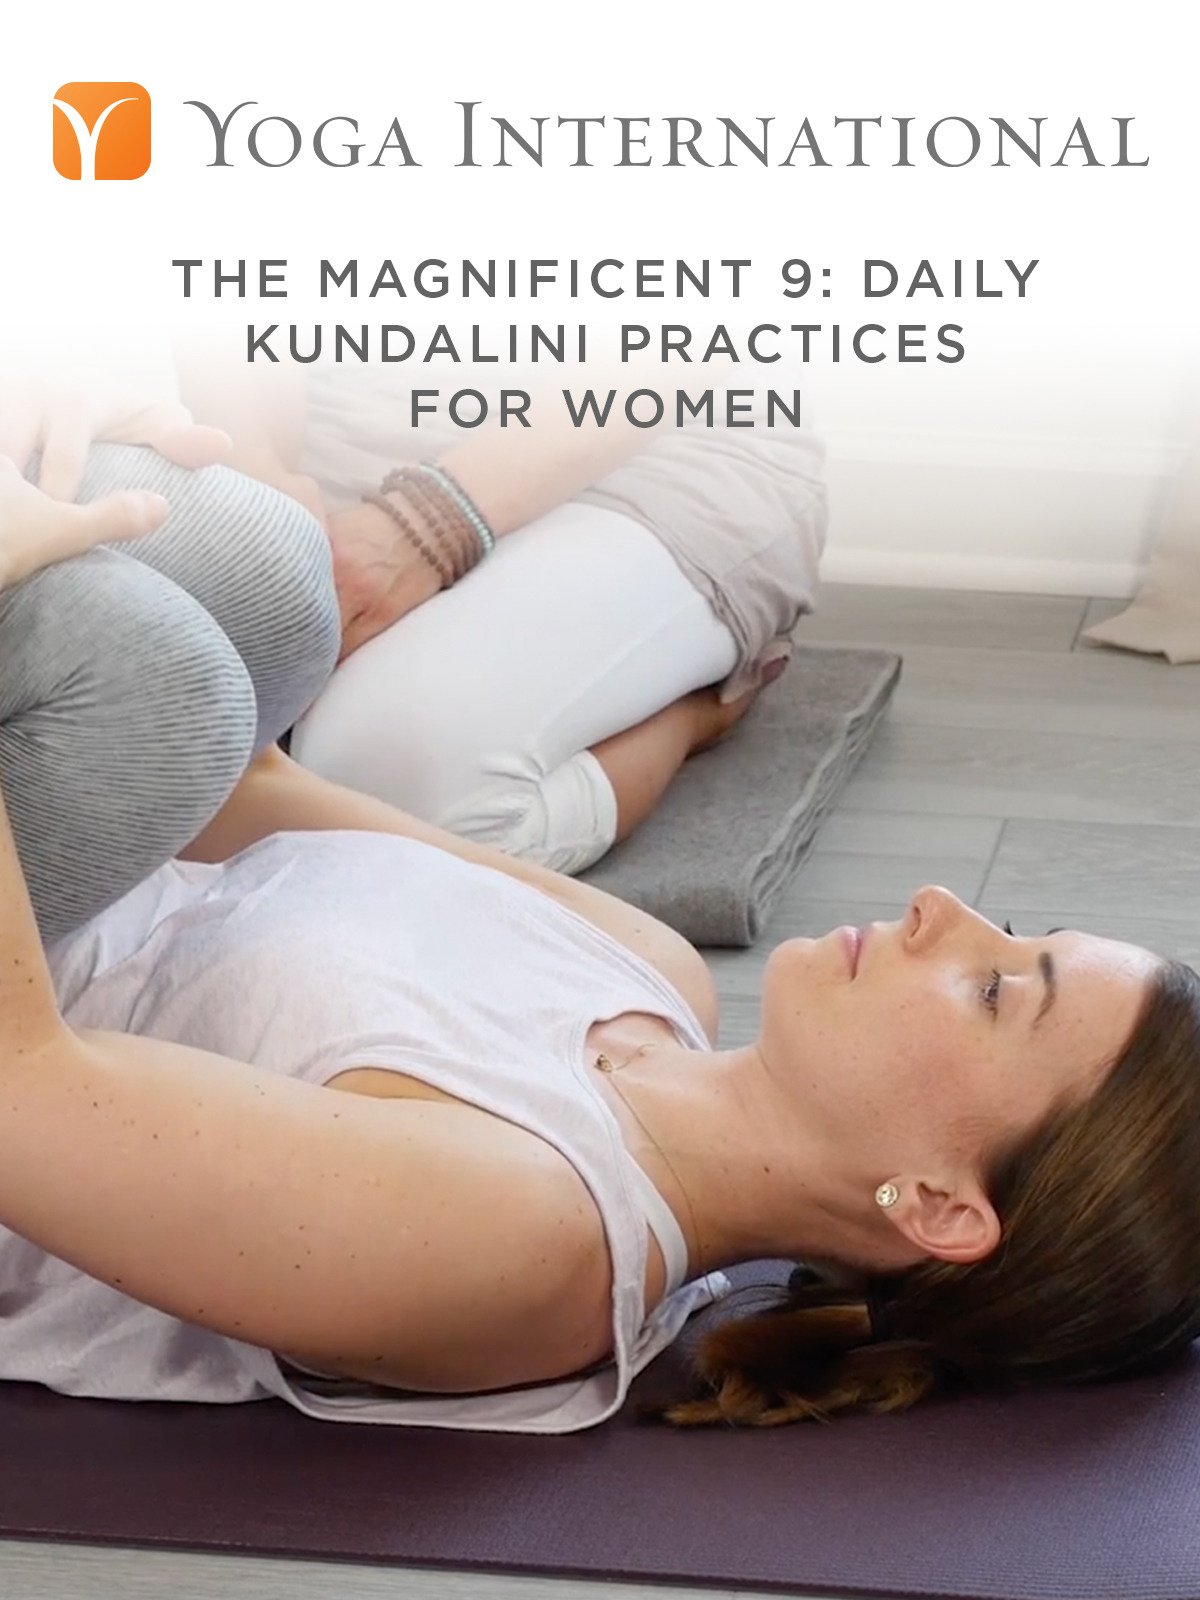 The Magnificent 9: Daily Kundalini Practices for Women